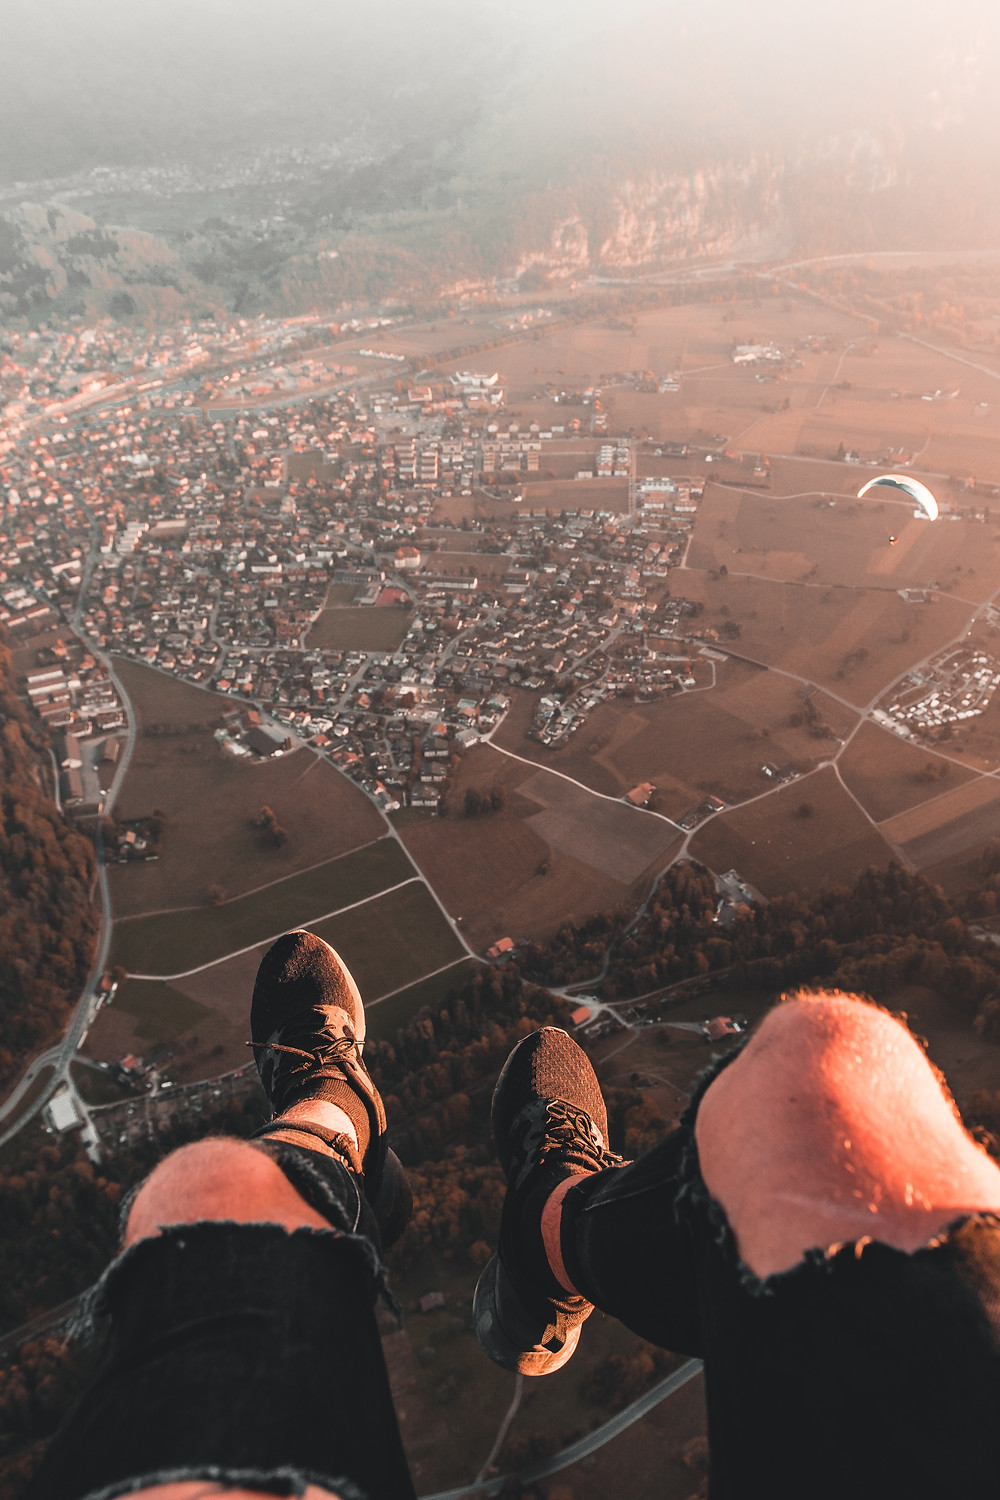 Paragliding and adventure in the Bernese alps of Switzerland